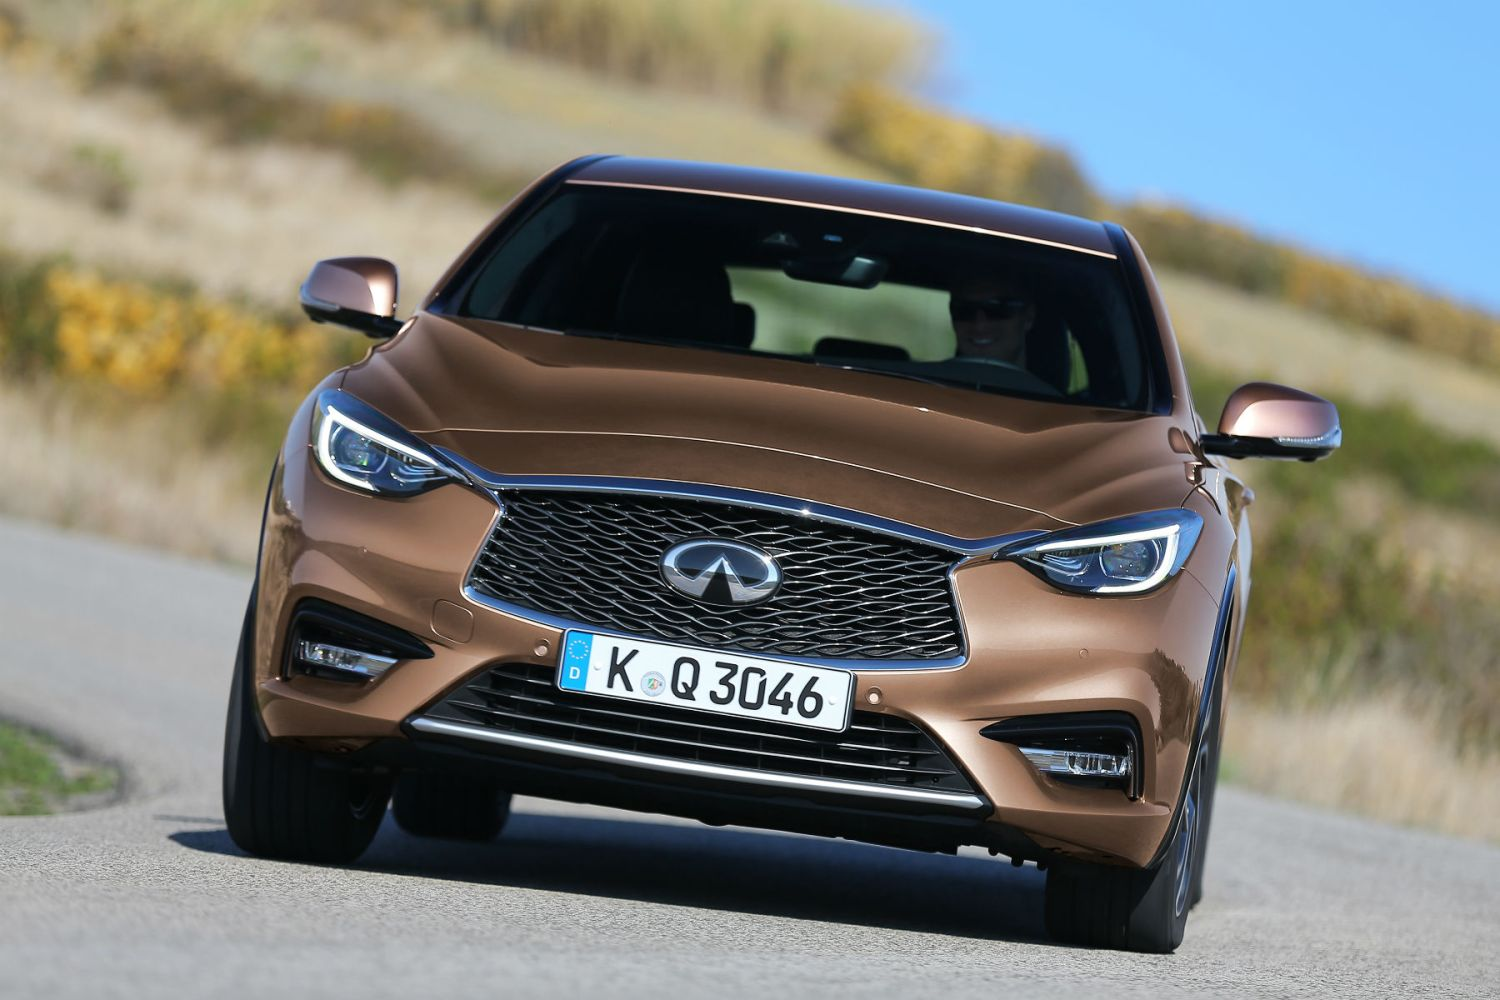 Infiniti Q30 review: Running costs